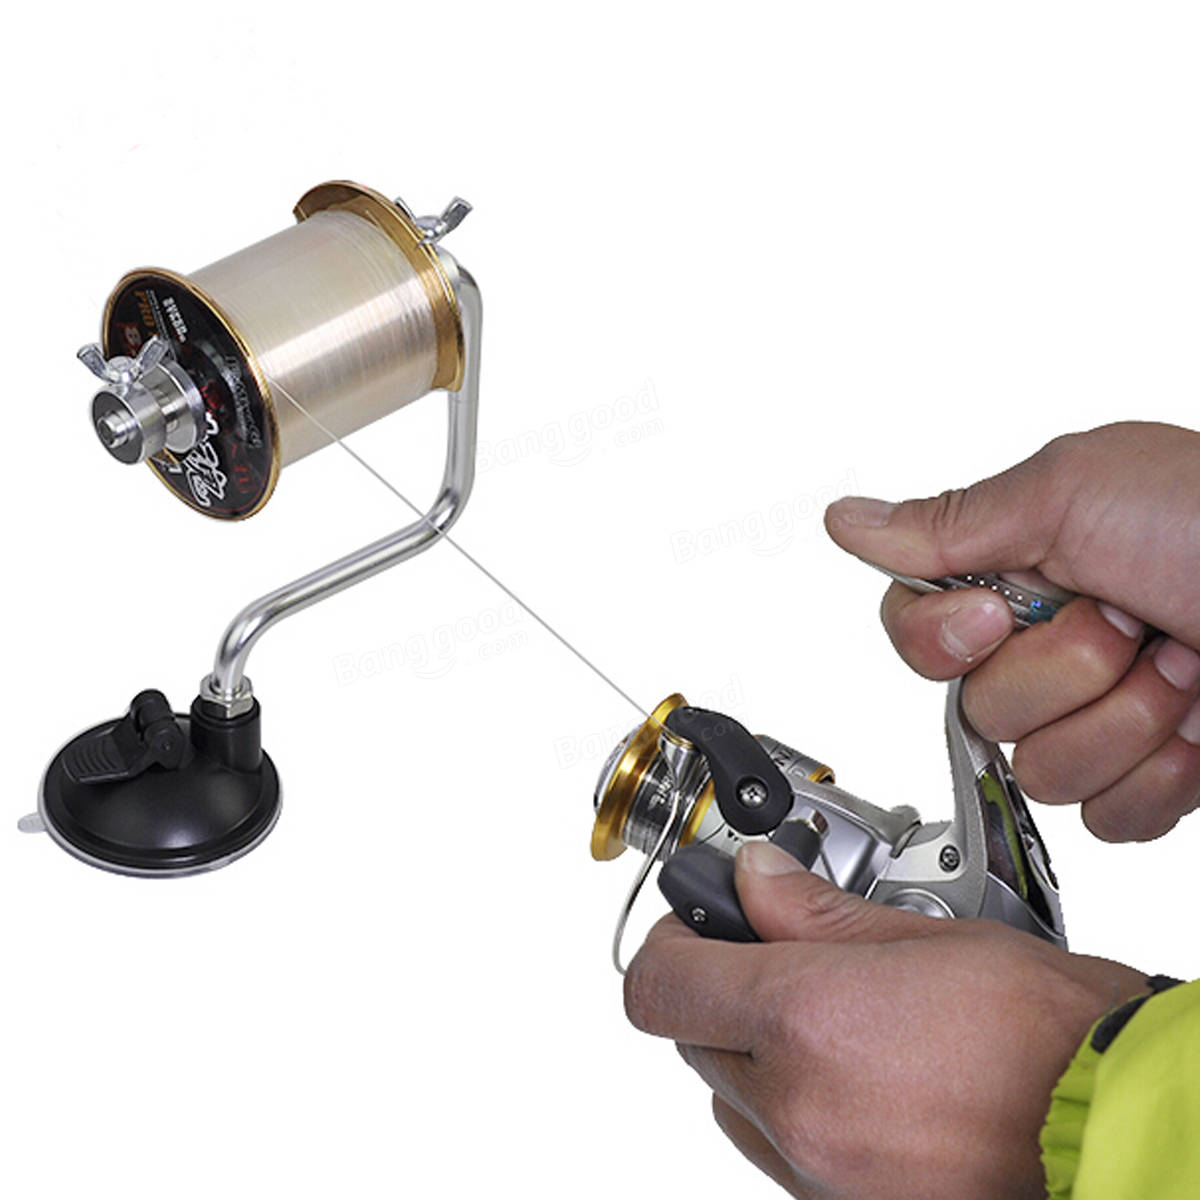 12cm x 15cm portable aluminum fishing line winder reel for Fishing line on reel